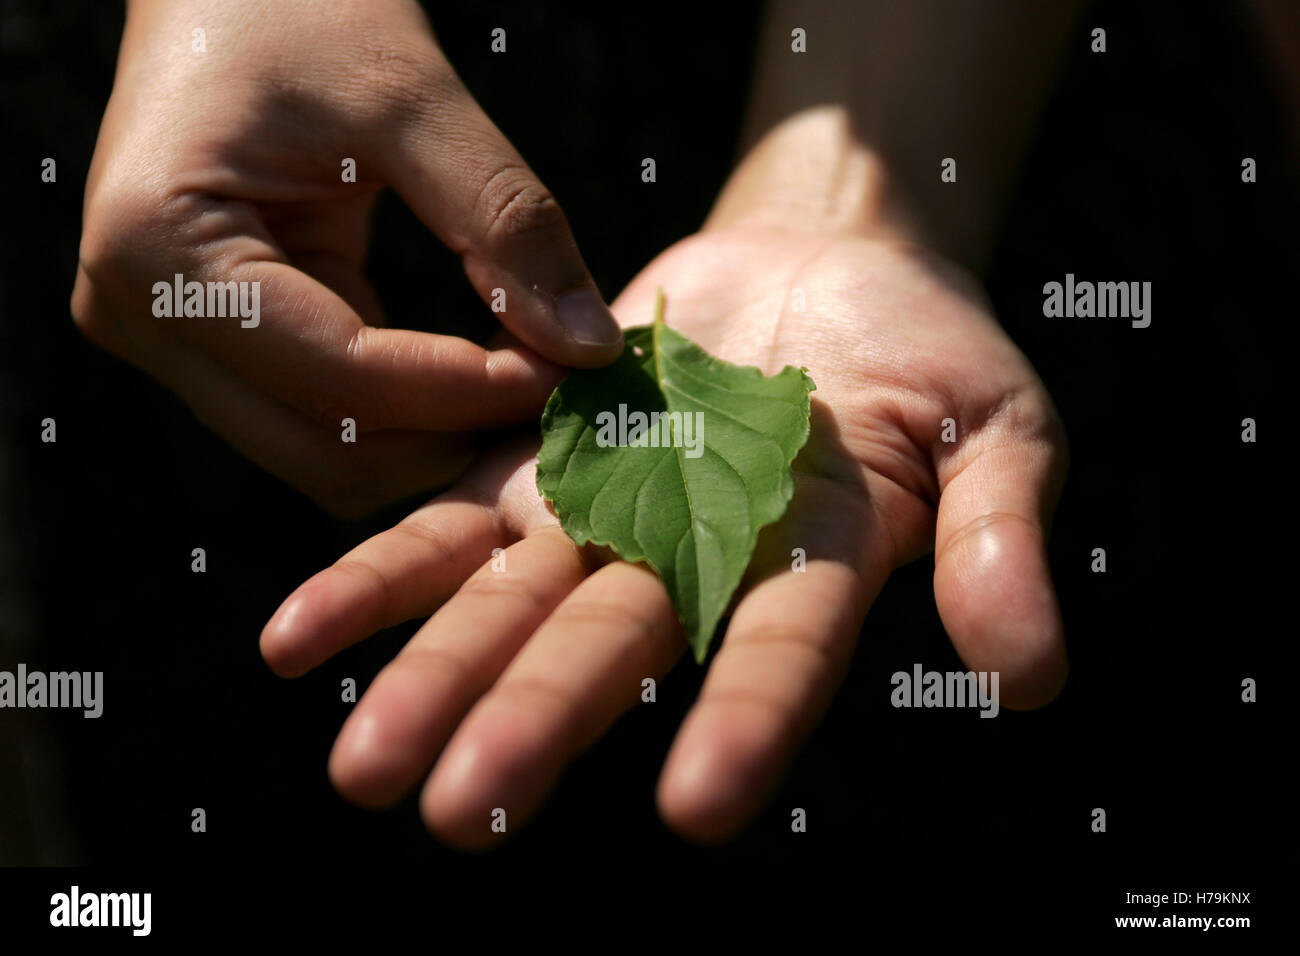 Hands holding leaf - Stock Image